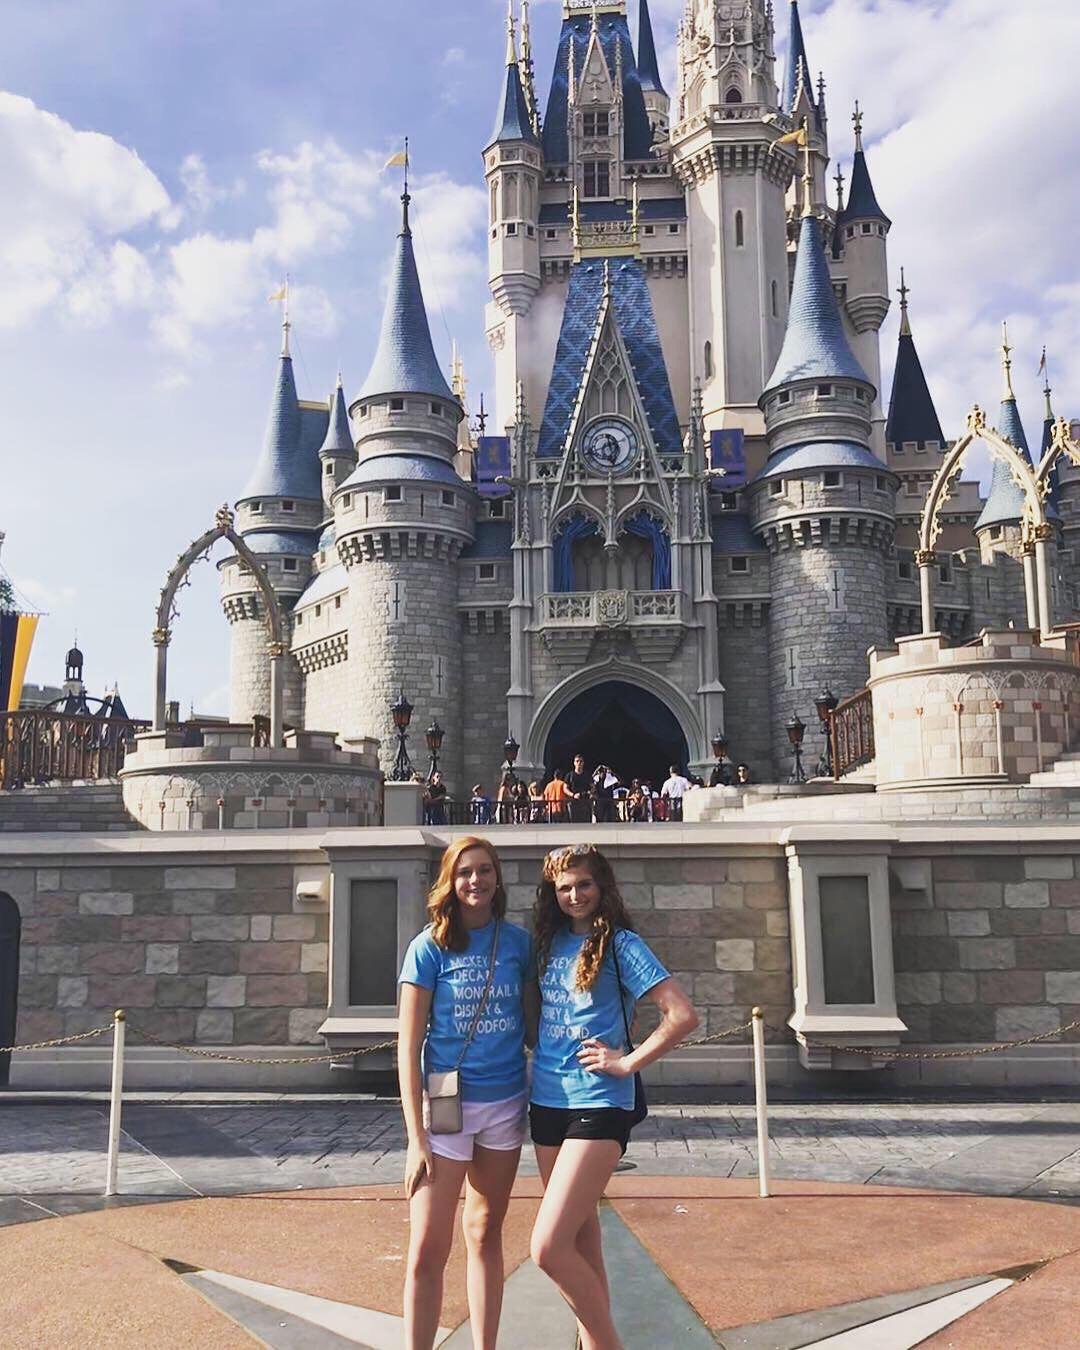 From left to right: Katherine Kelly and Katherine Crain pose for a quick picture in front of the castle. Photo by Emma Wesley